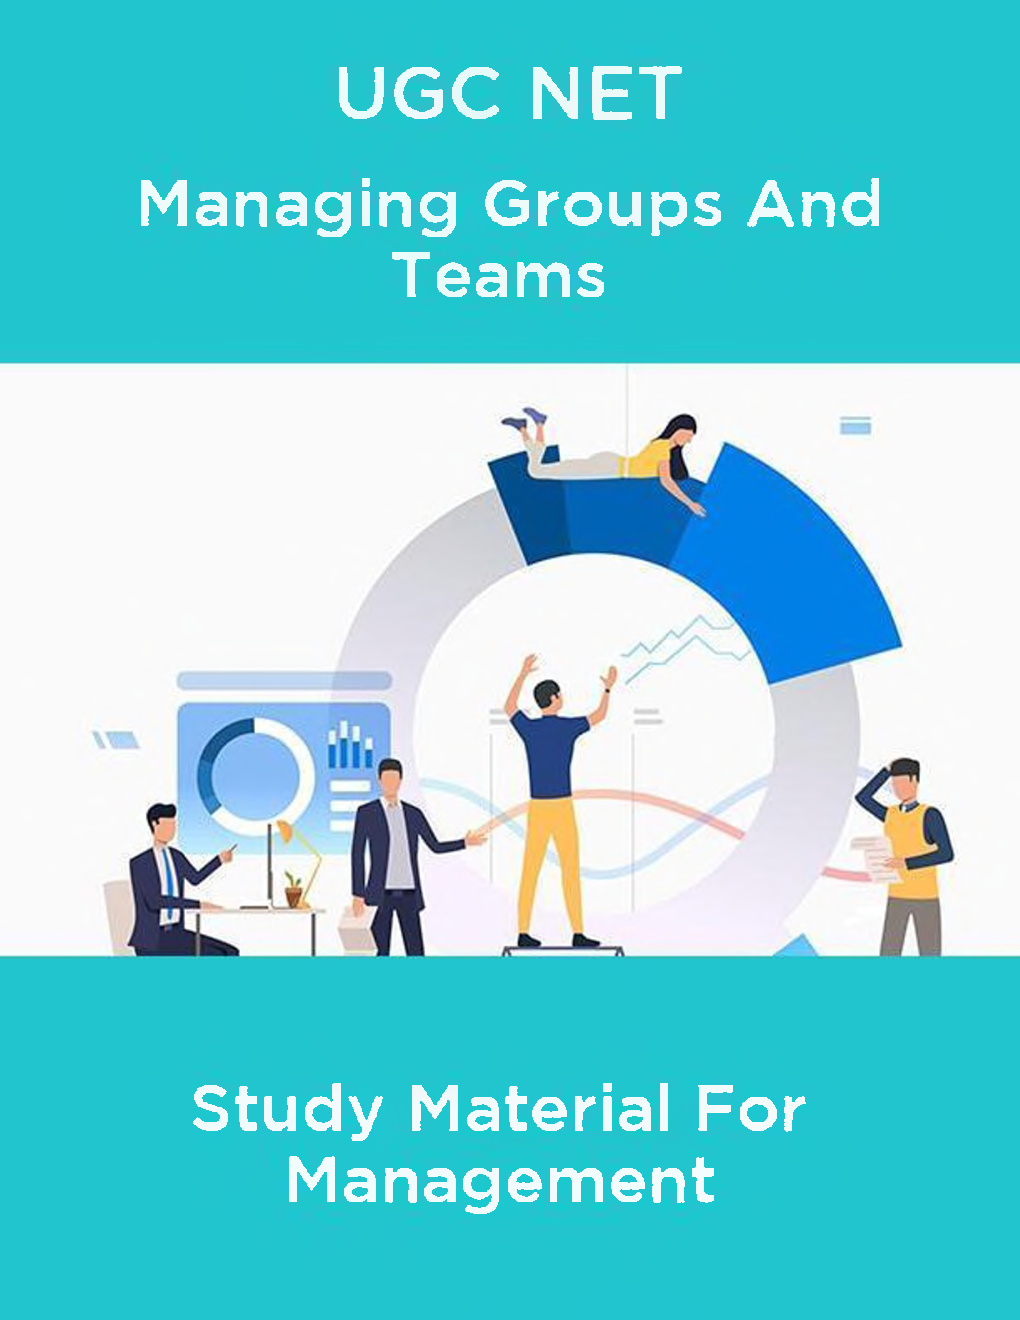 UGC NET Managing Groups And Teams Study Material For Management - Page 1